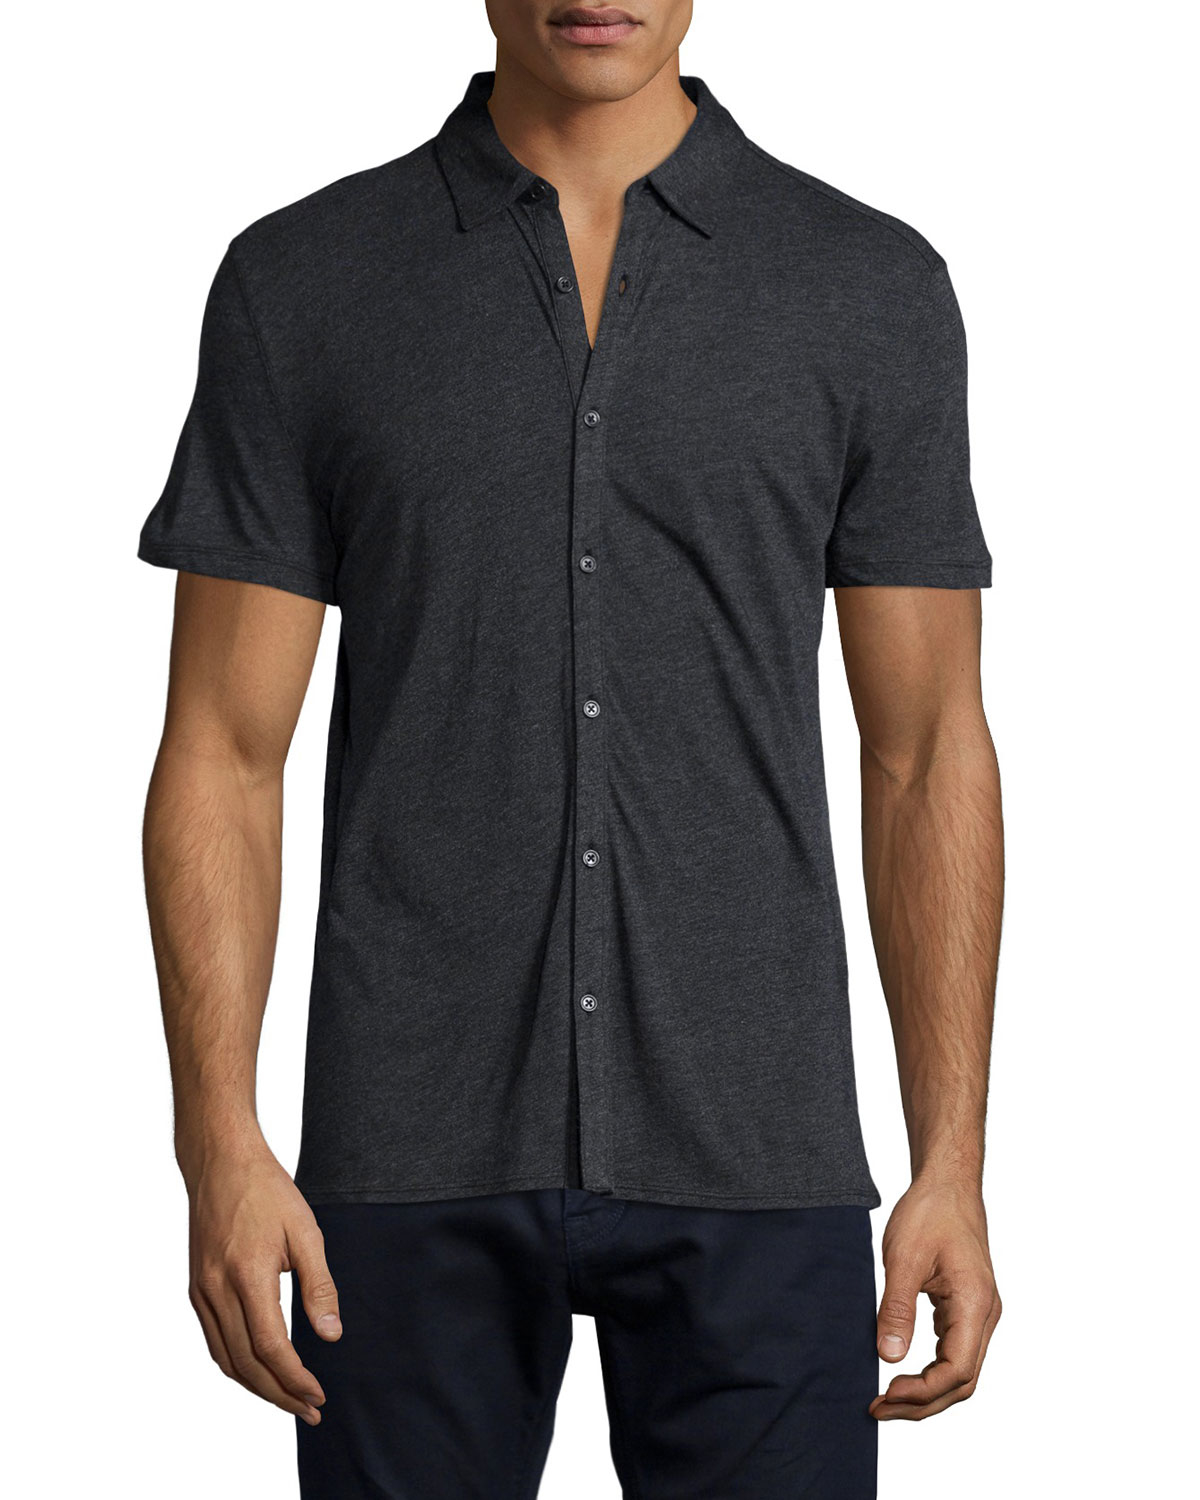 Button-down shirts are good-looking and provide a neat appearance - they're truly appropriate for practically any setting. These cool and comfortable shirts are perfect for work or just for socializing and relaxing at the end of the day.